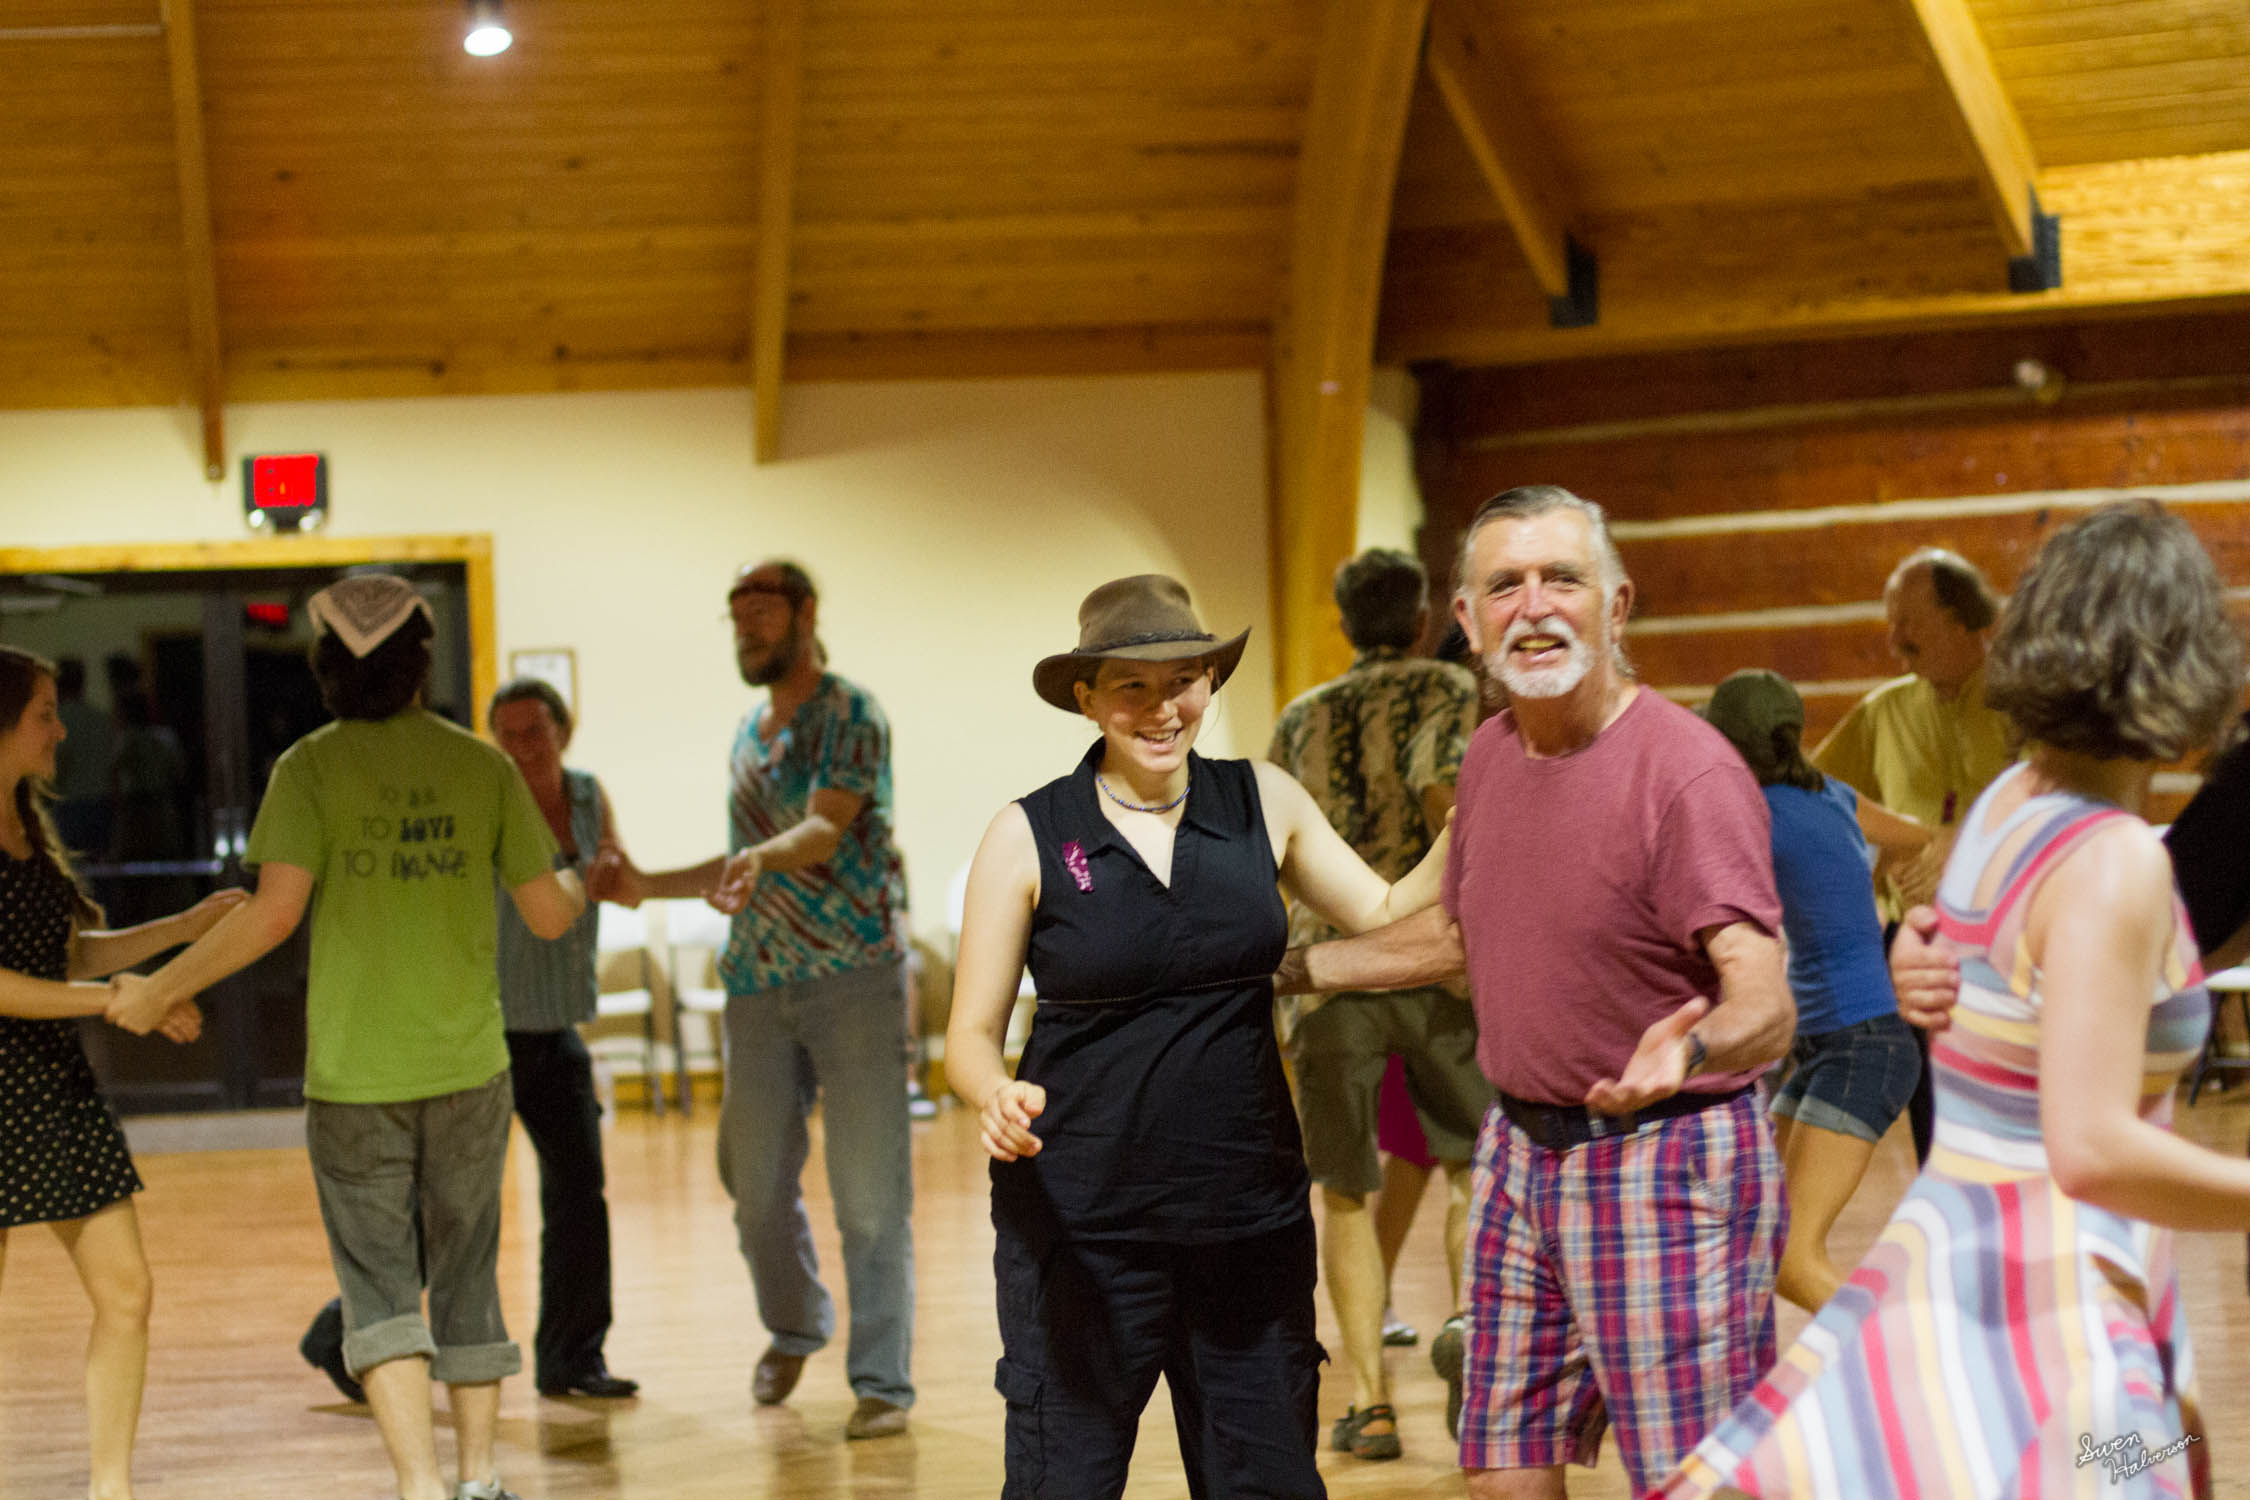 Contra dancing in Berea-004.jpg